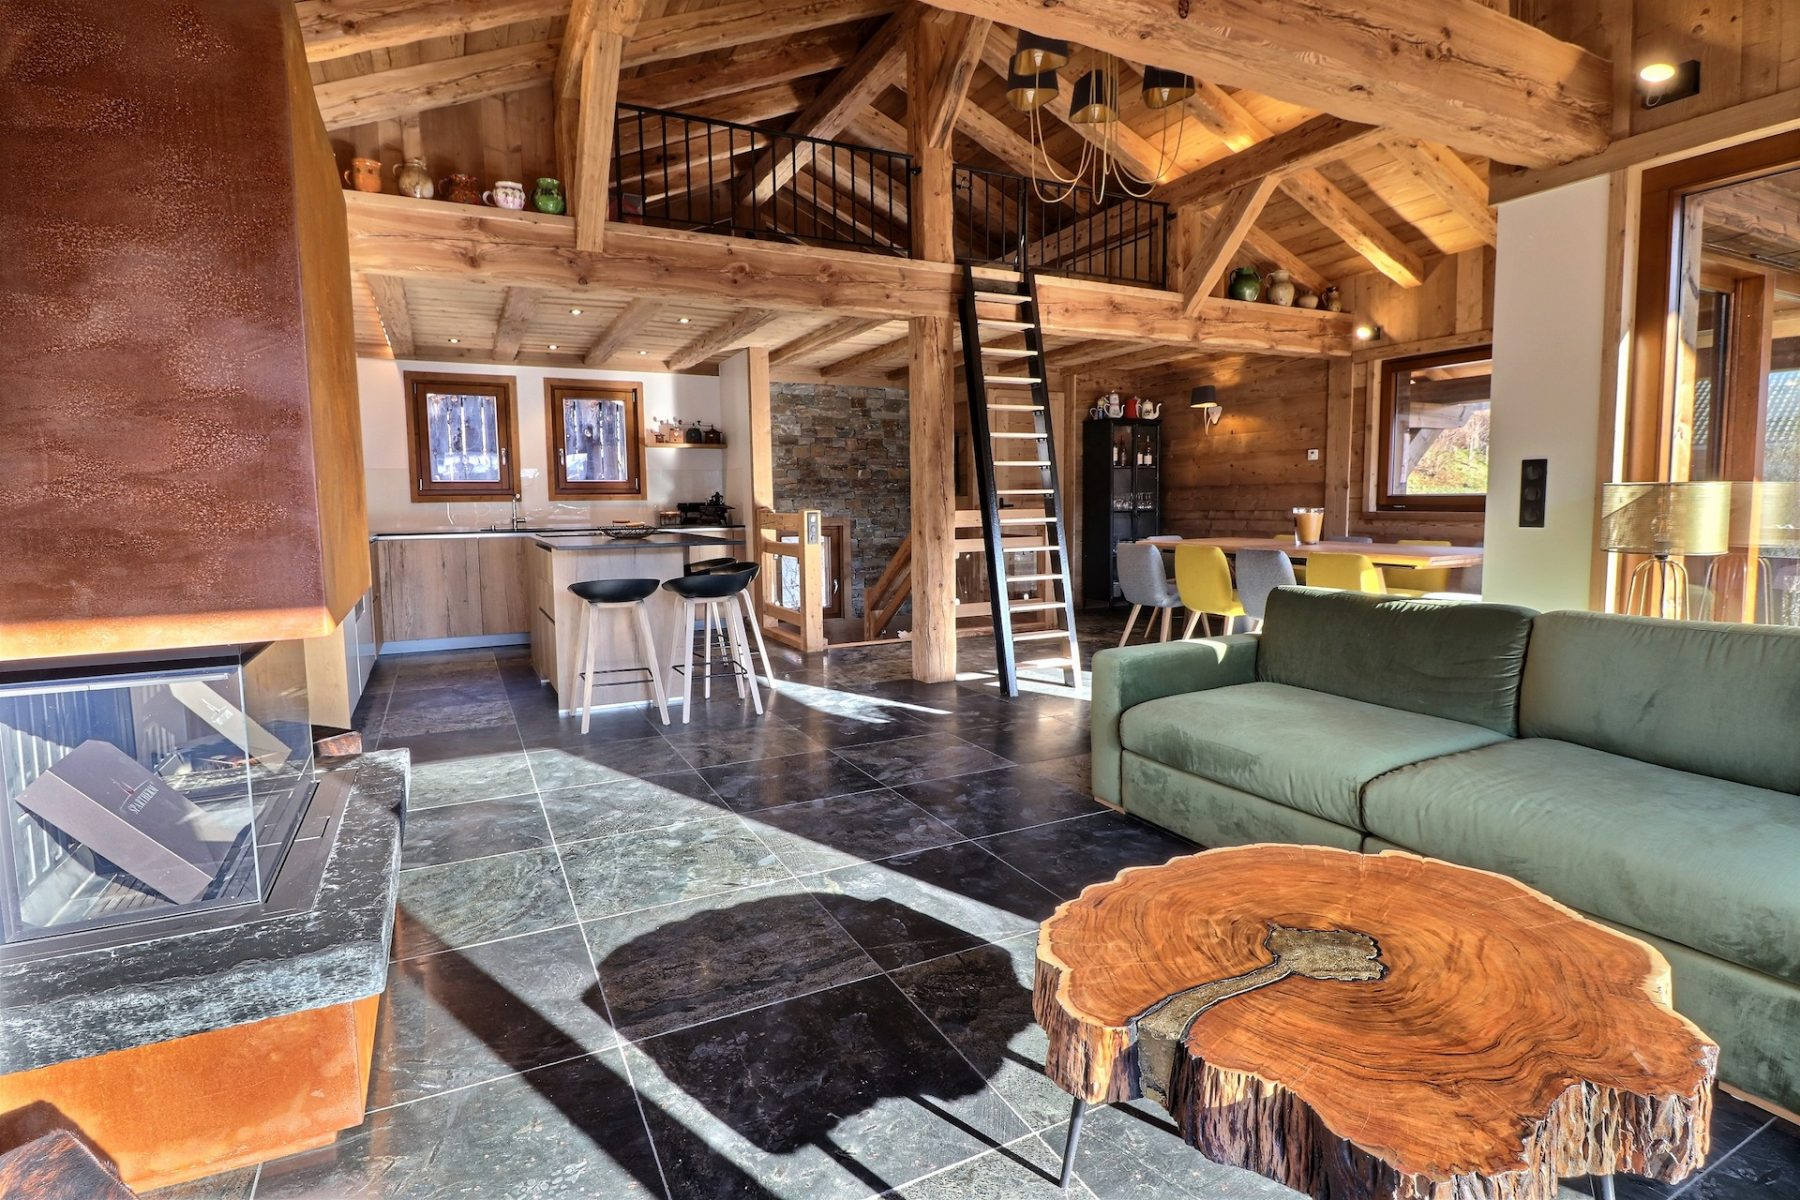 wooden lounge area in a chalet